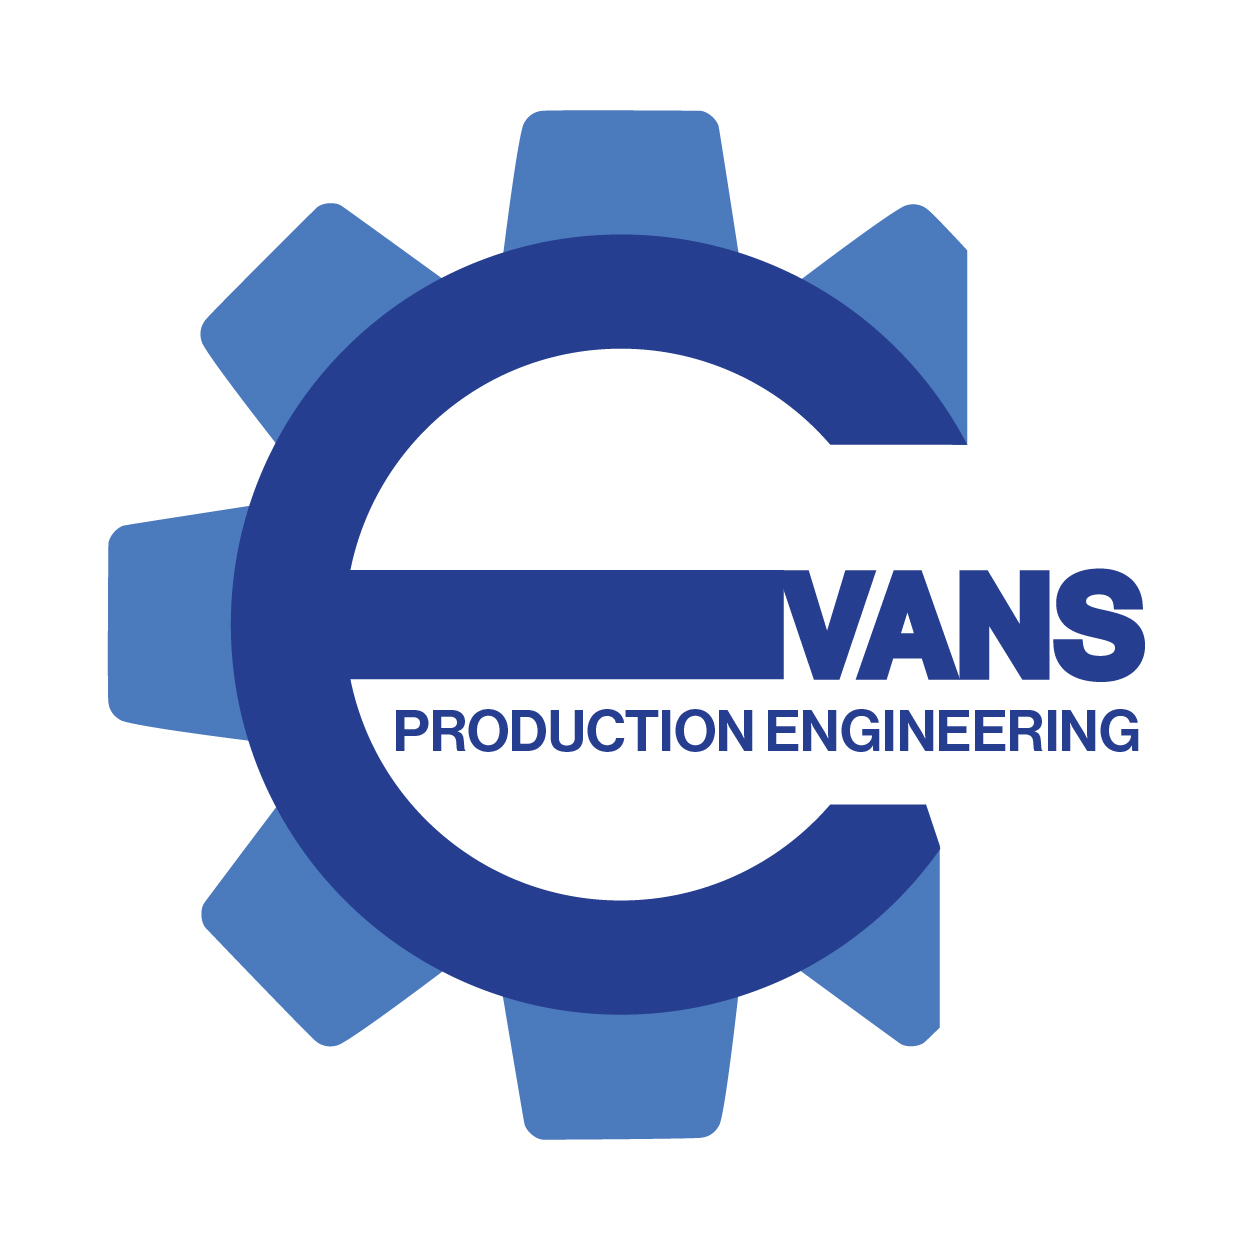 Evans Production Engineering Co.